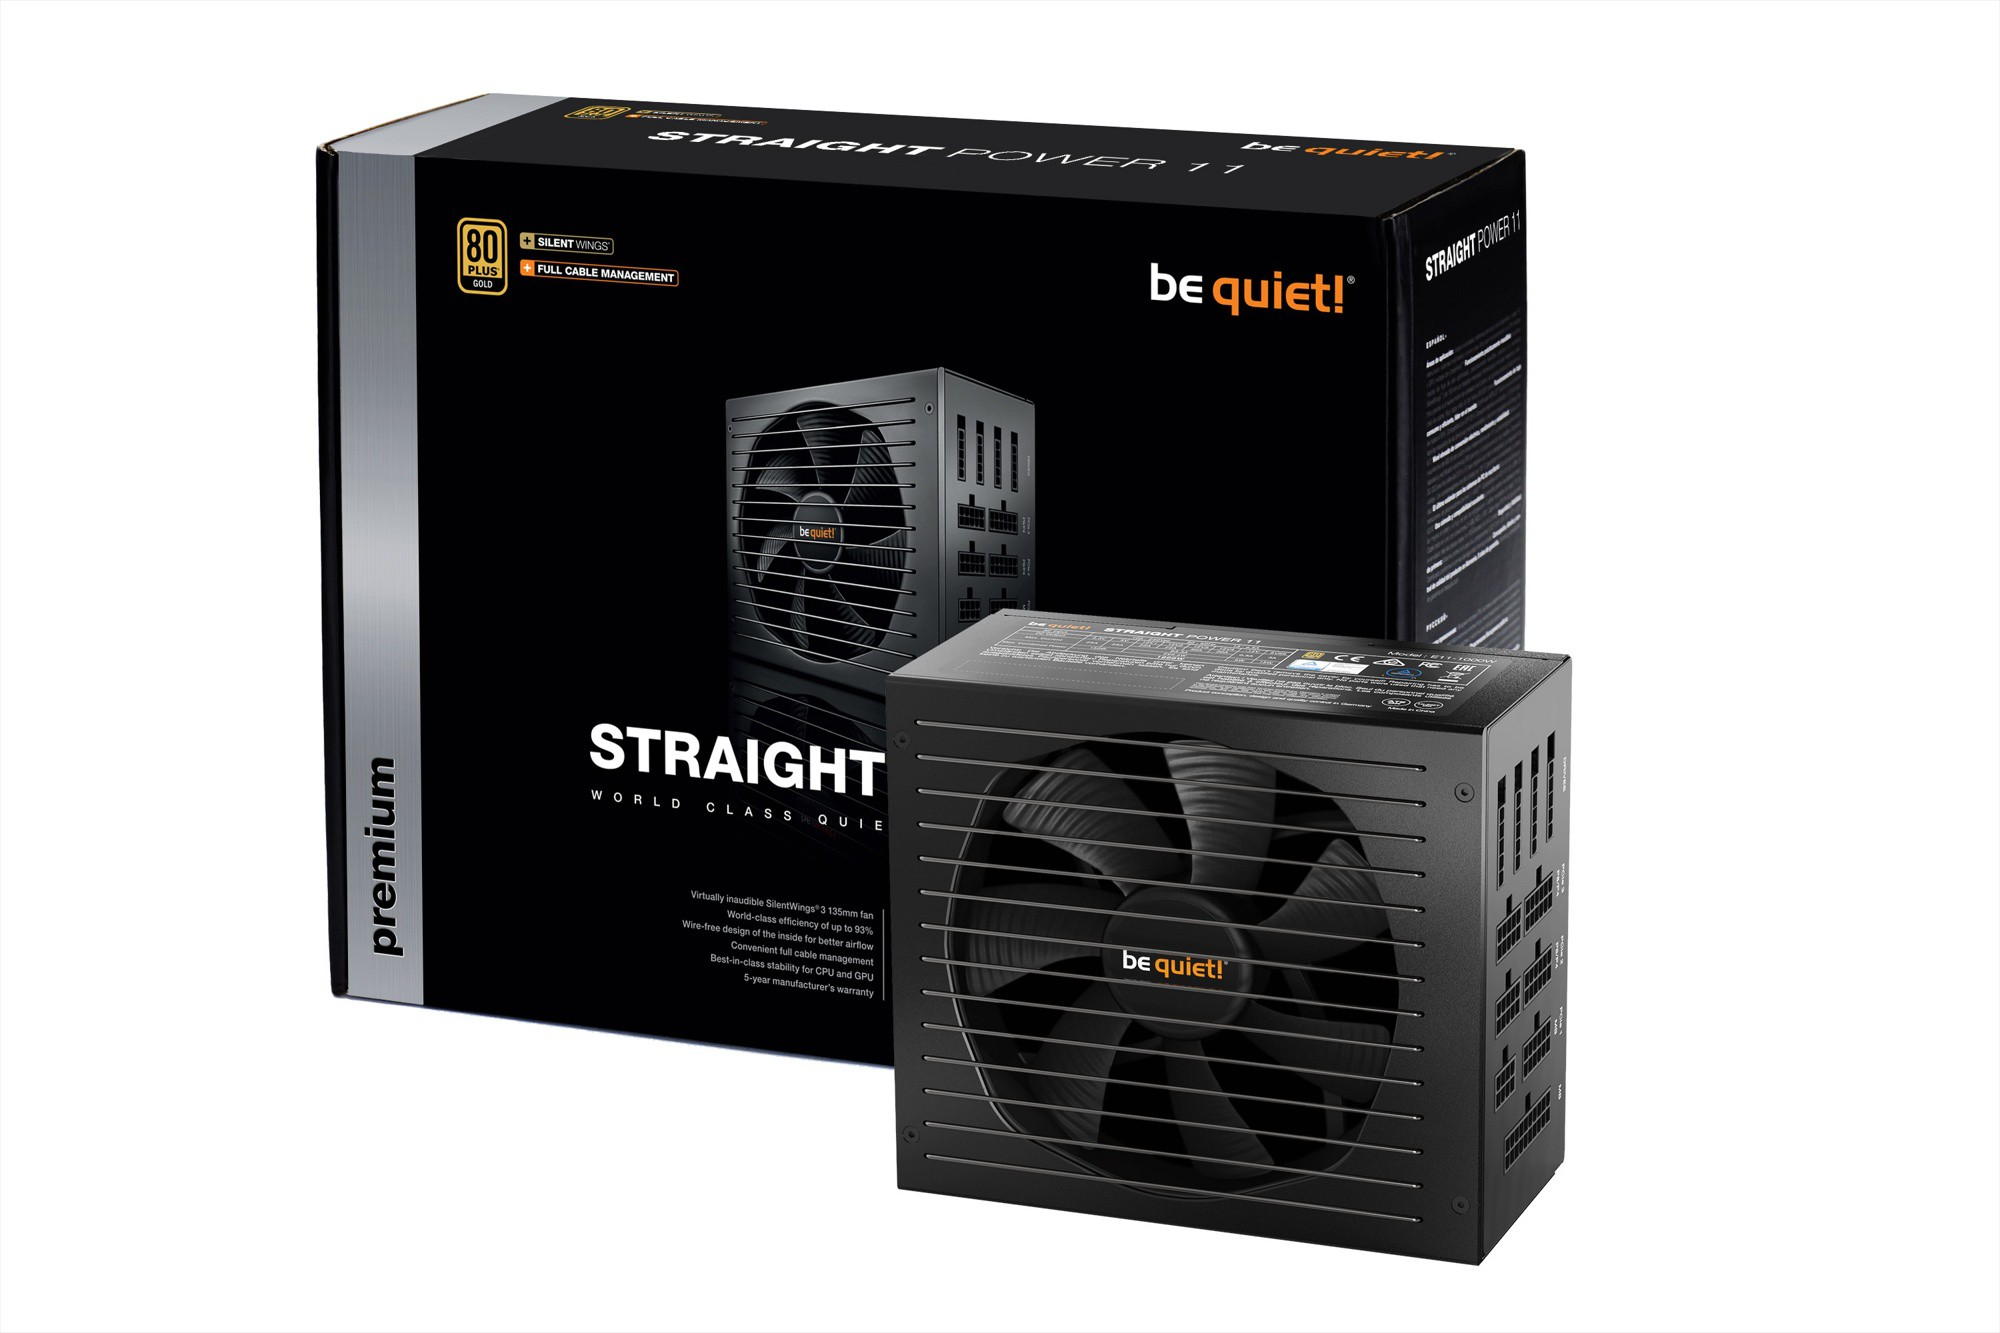 Блок питания 750W be quiet! Straight Power 11 750W (BN283) (24+8+8pin, 4x6/8pin, 4xMolex, 11xSATA, 80+ Gold, модульный)